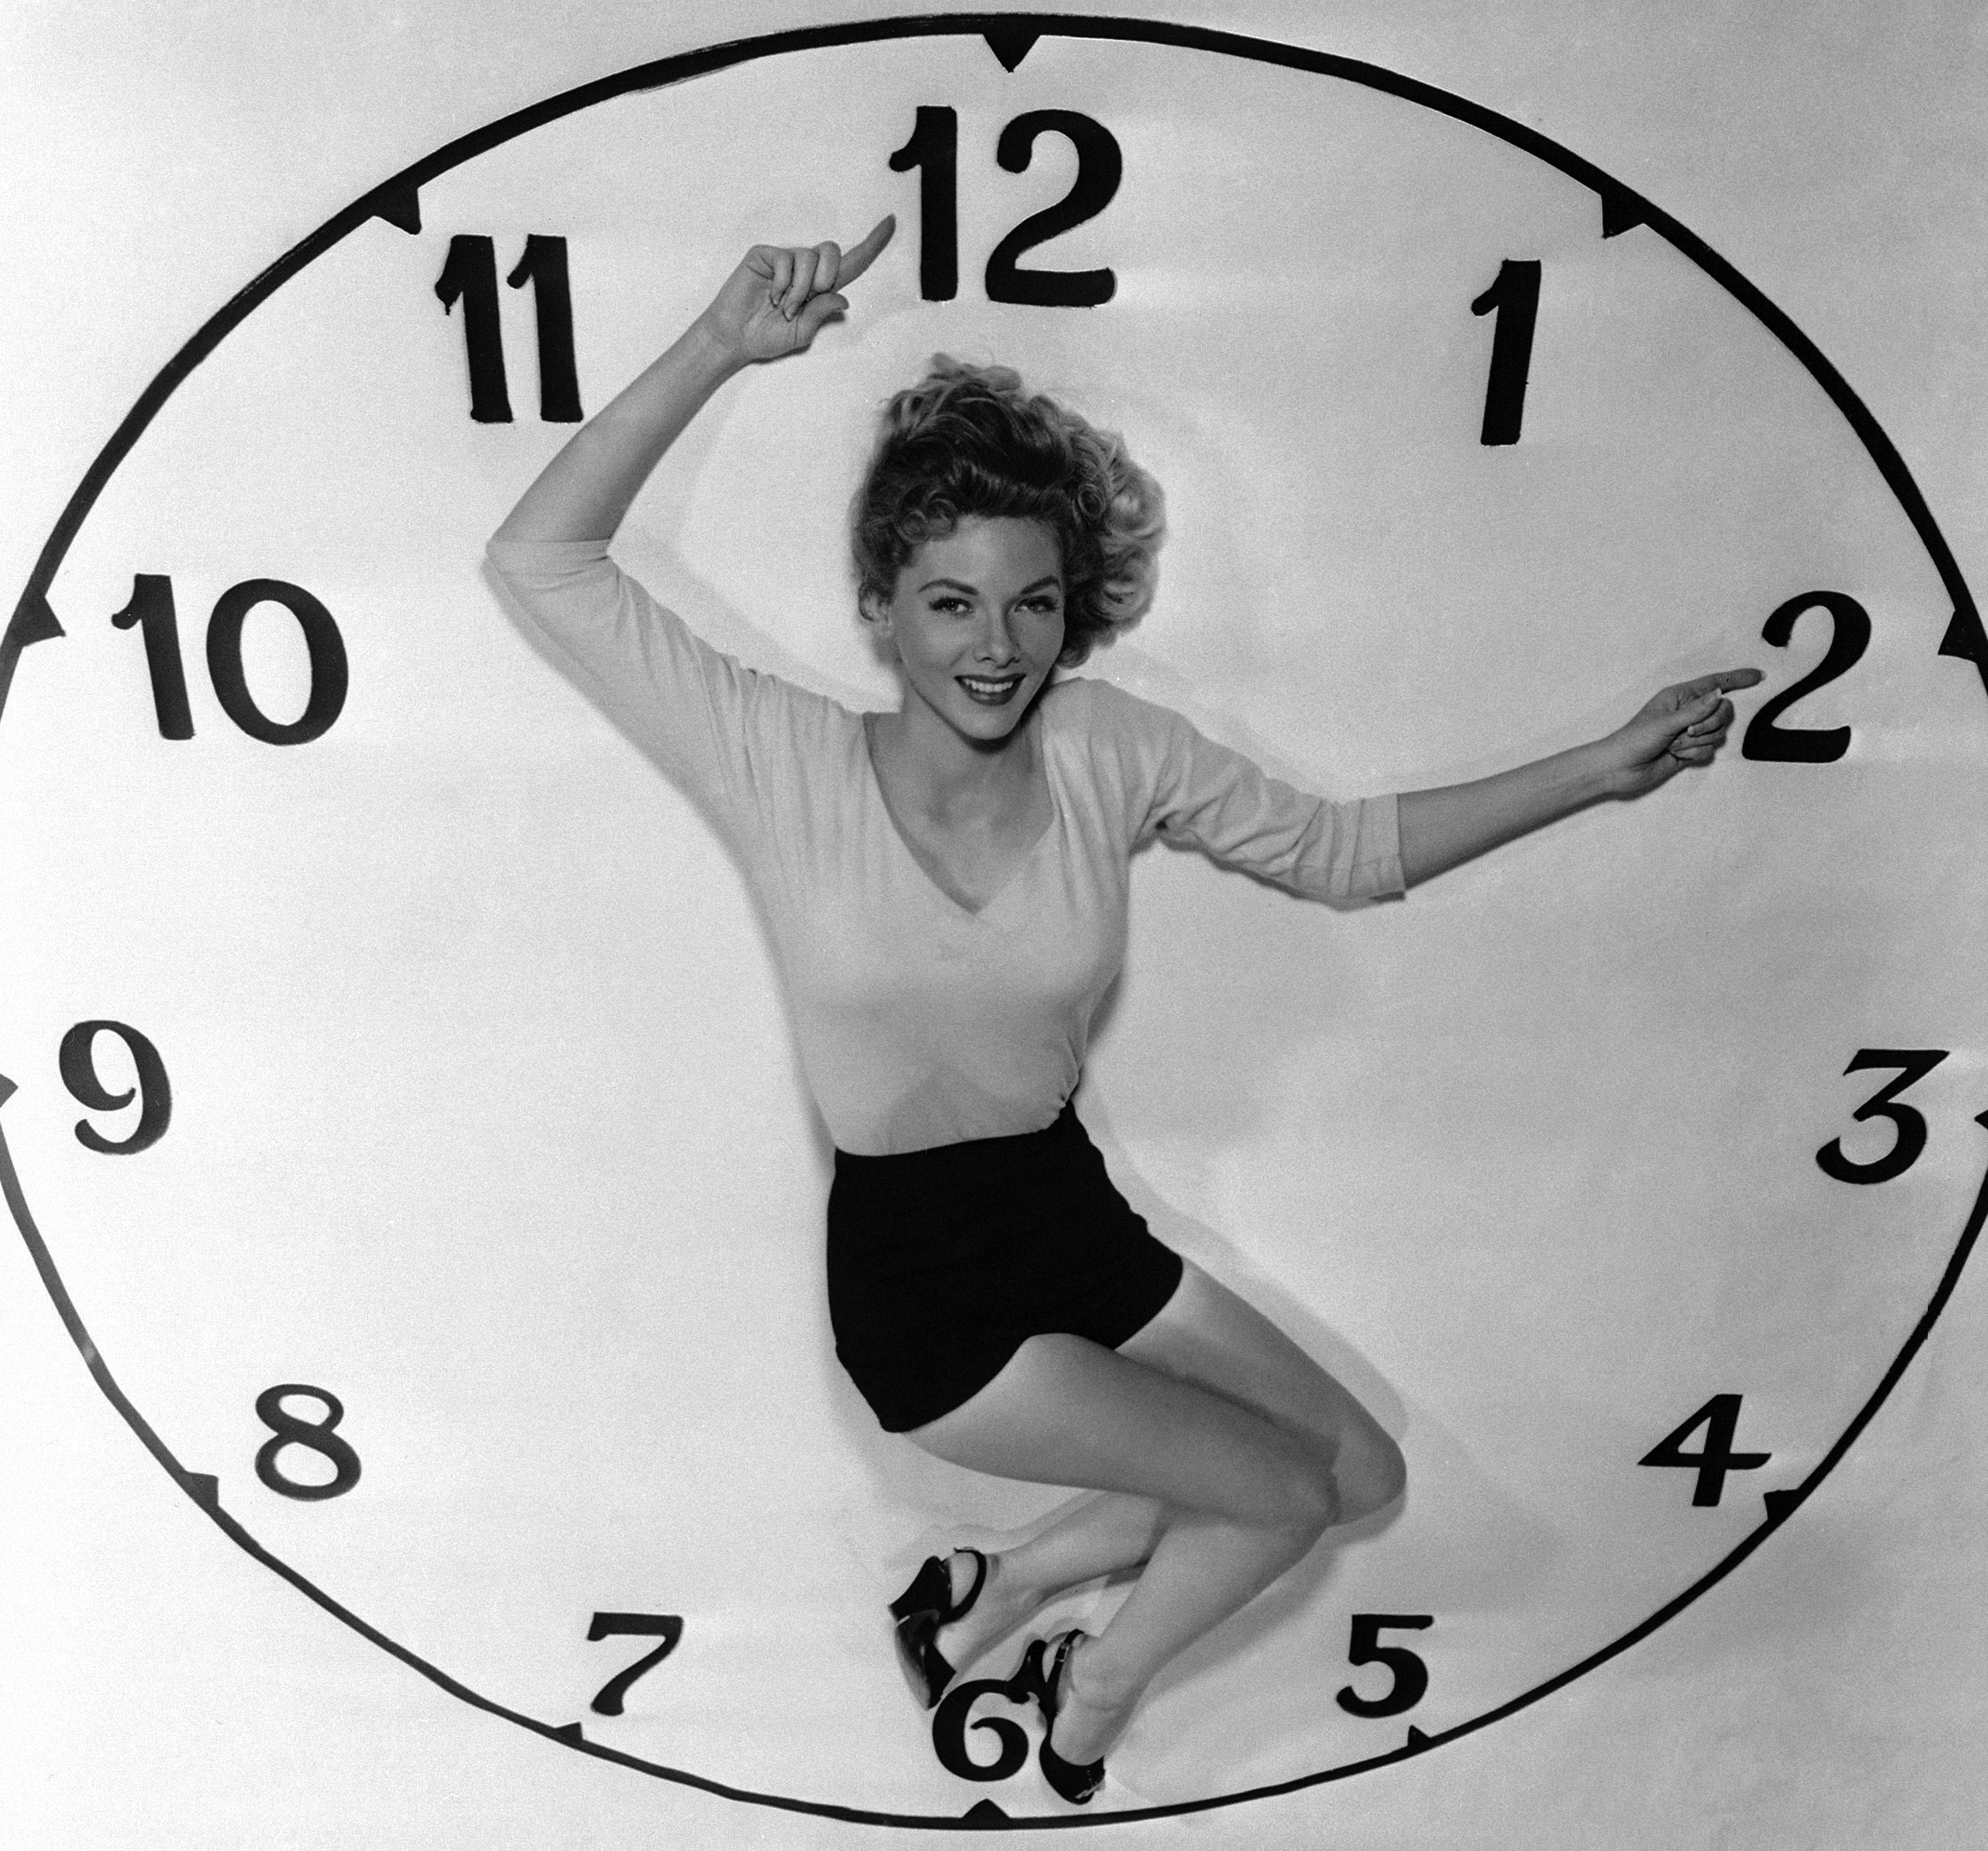 When does British Summer Time start? Don't miss the clocks going forward